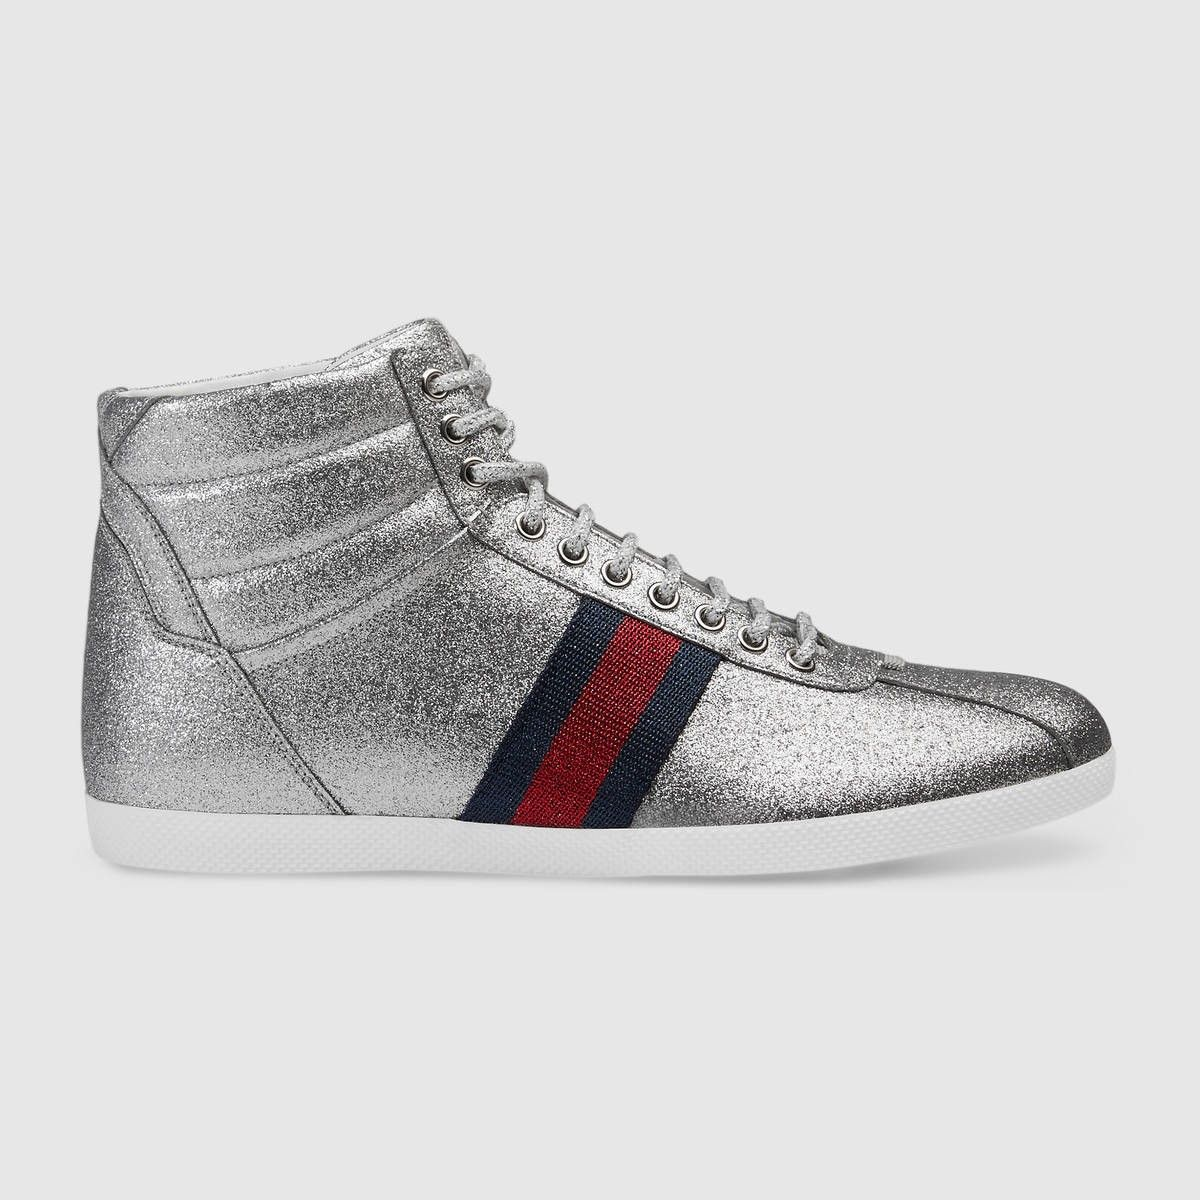 4ff3ddb0df83 GUCCI Glitter Web High-Top Sneaker - Silver Glitter Fabric.  gucci  shoes   all